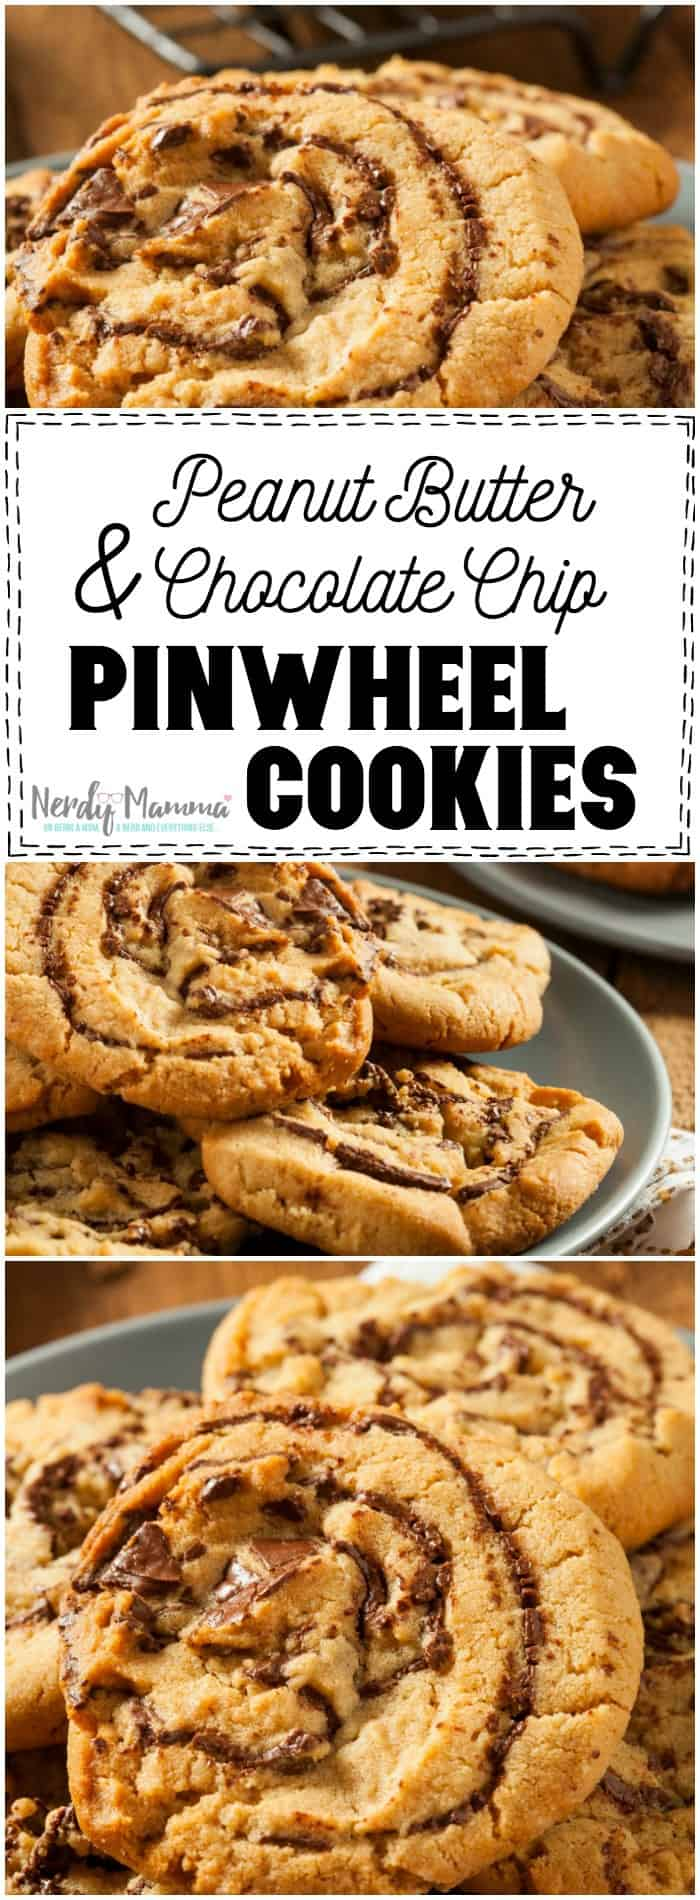 OMG. This recipe for Peanut Butter & Chocolate Chip Pinwheel Cookies! I'm in LOVE.